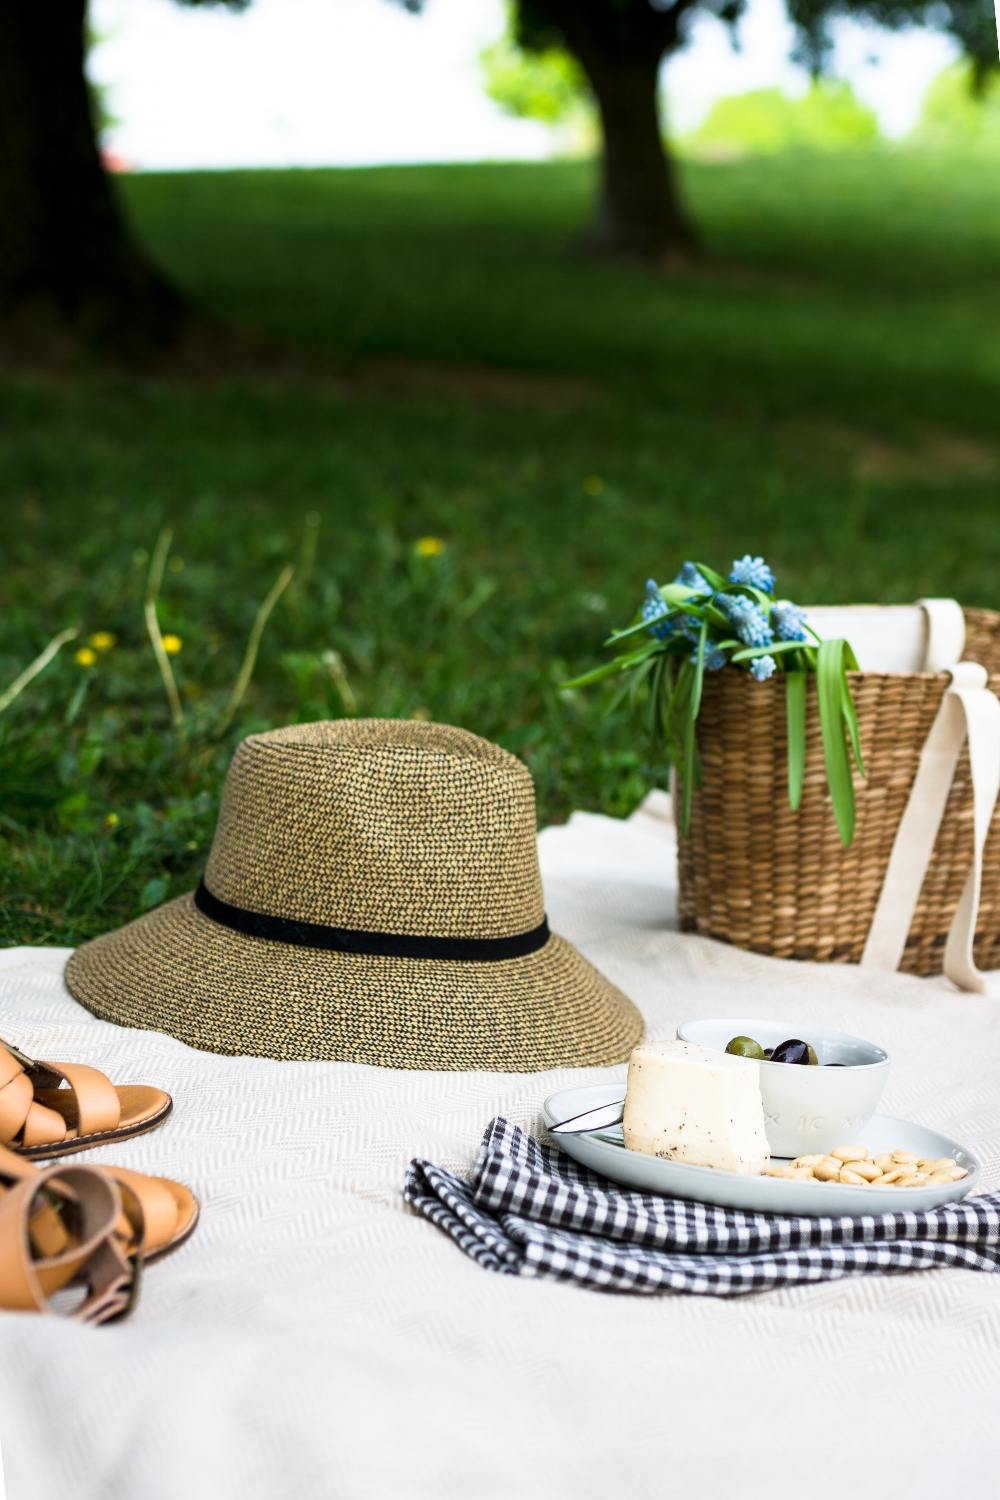 picnic product photography